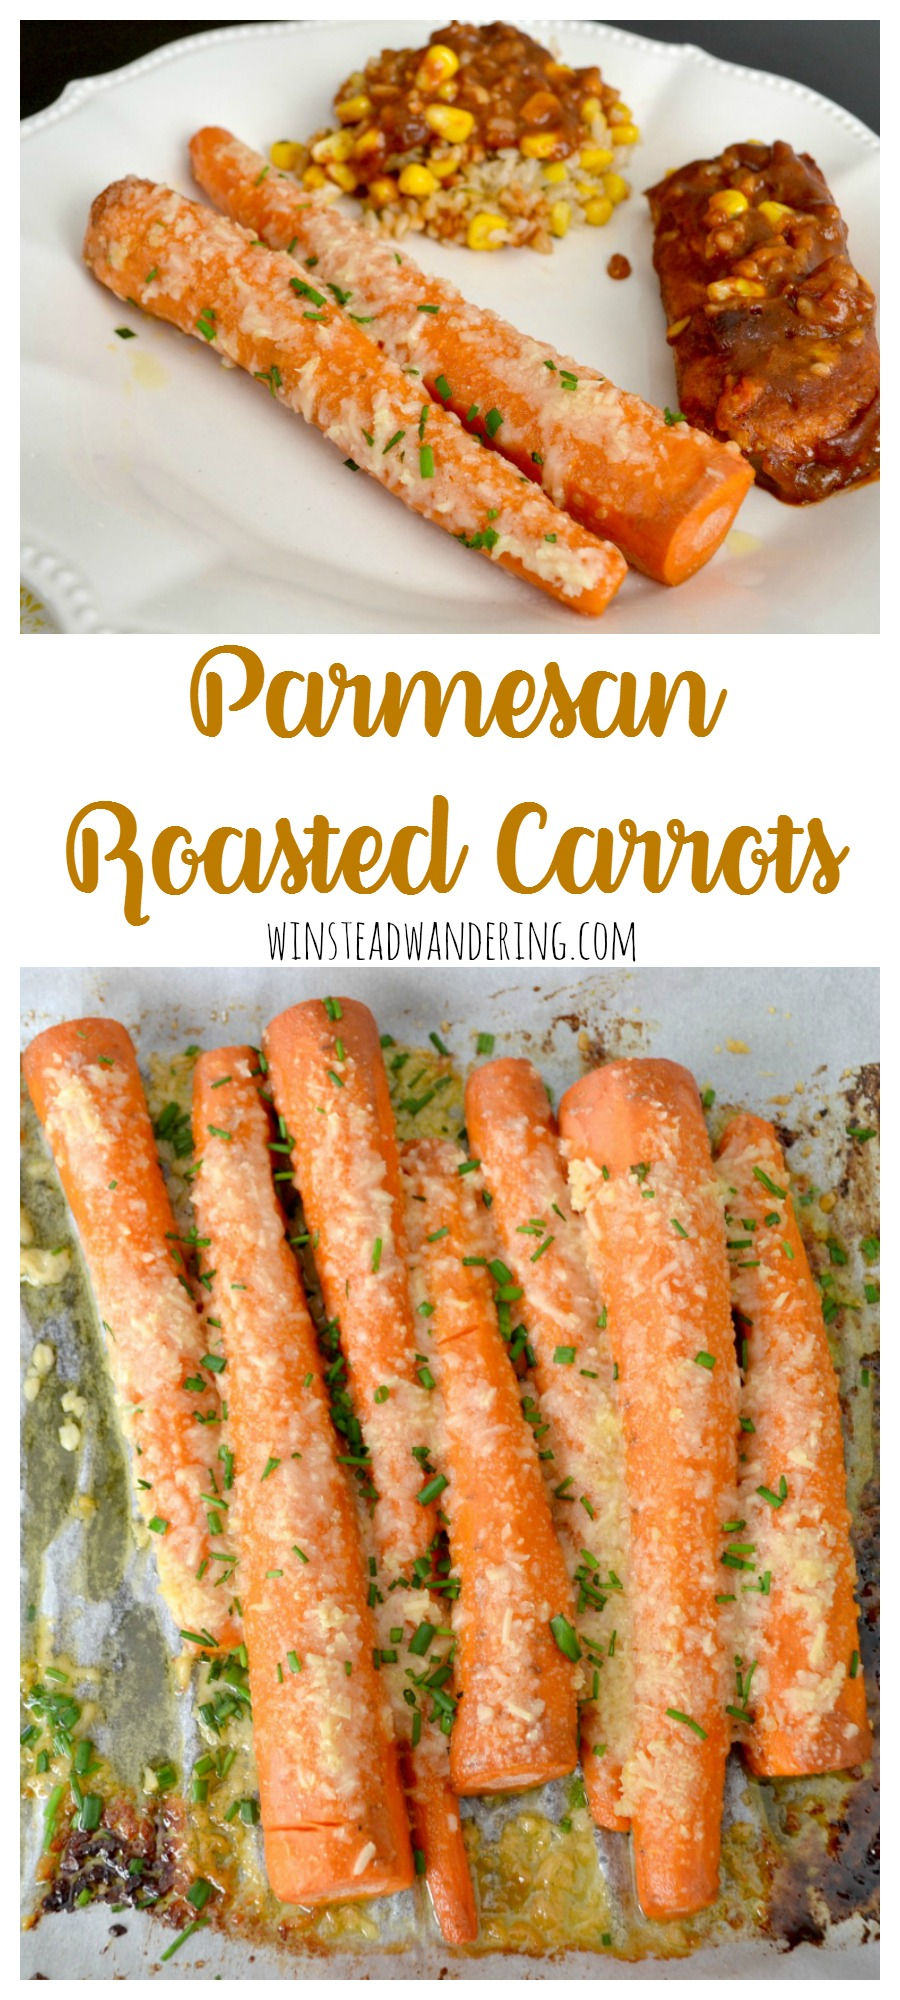 Whether you're making a fancy spread or a quick meal, Parmesan roasted carrots are the perfect easy and tasty side dish.